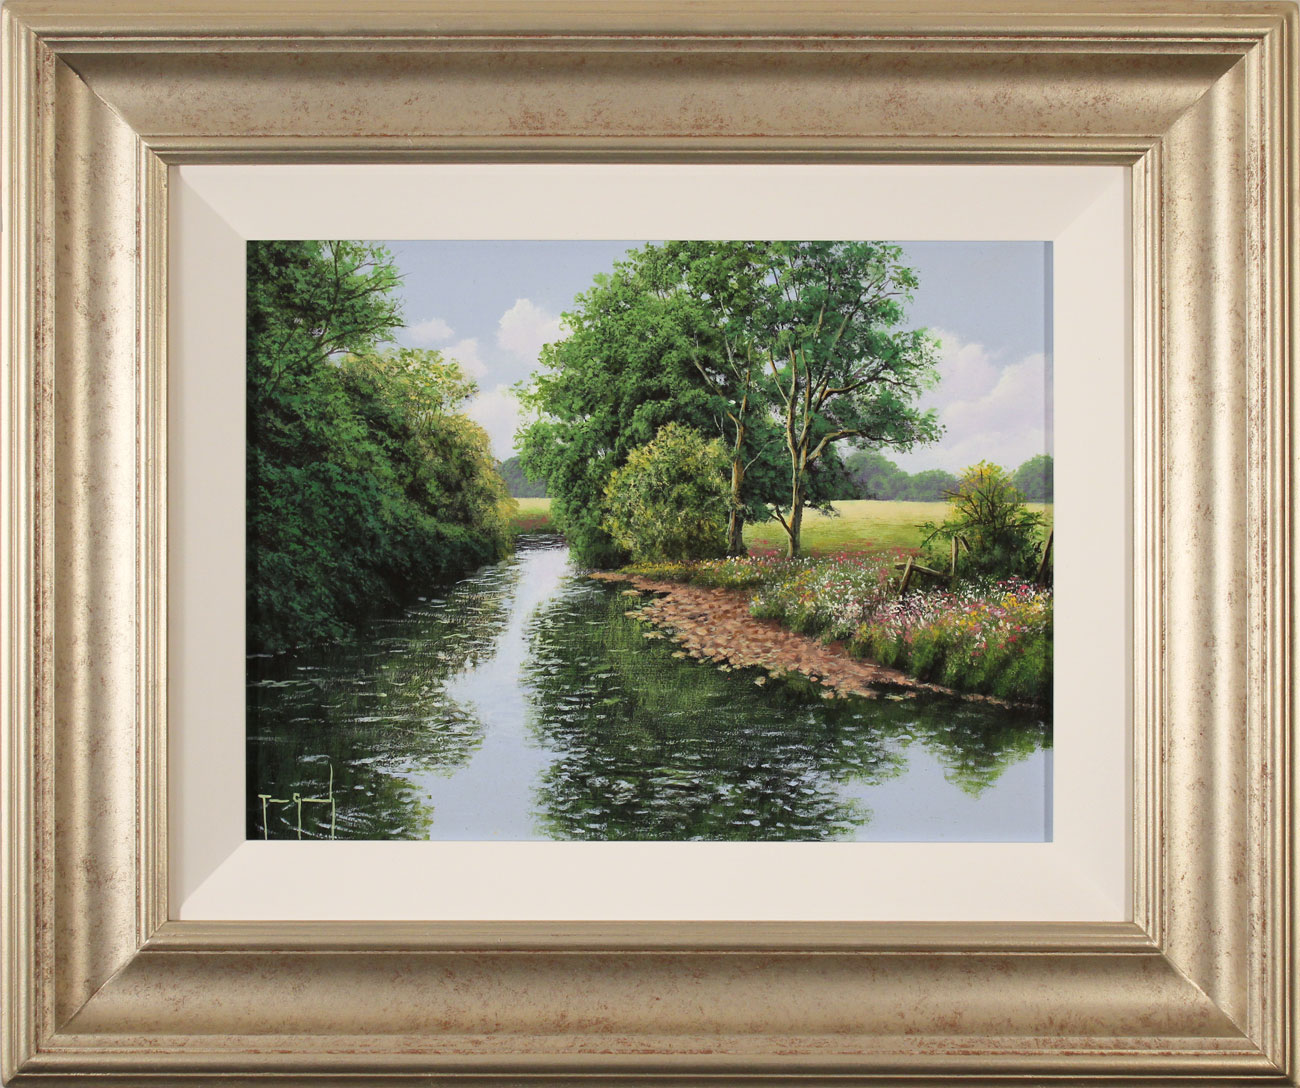 Terry Grundy, Original oil painting on panel, Midsummer Tranquillity, click to enlarge